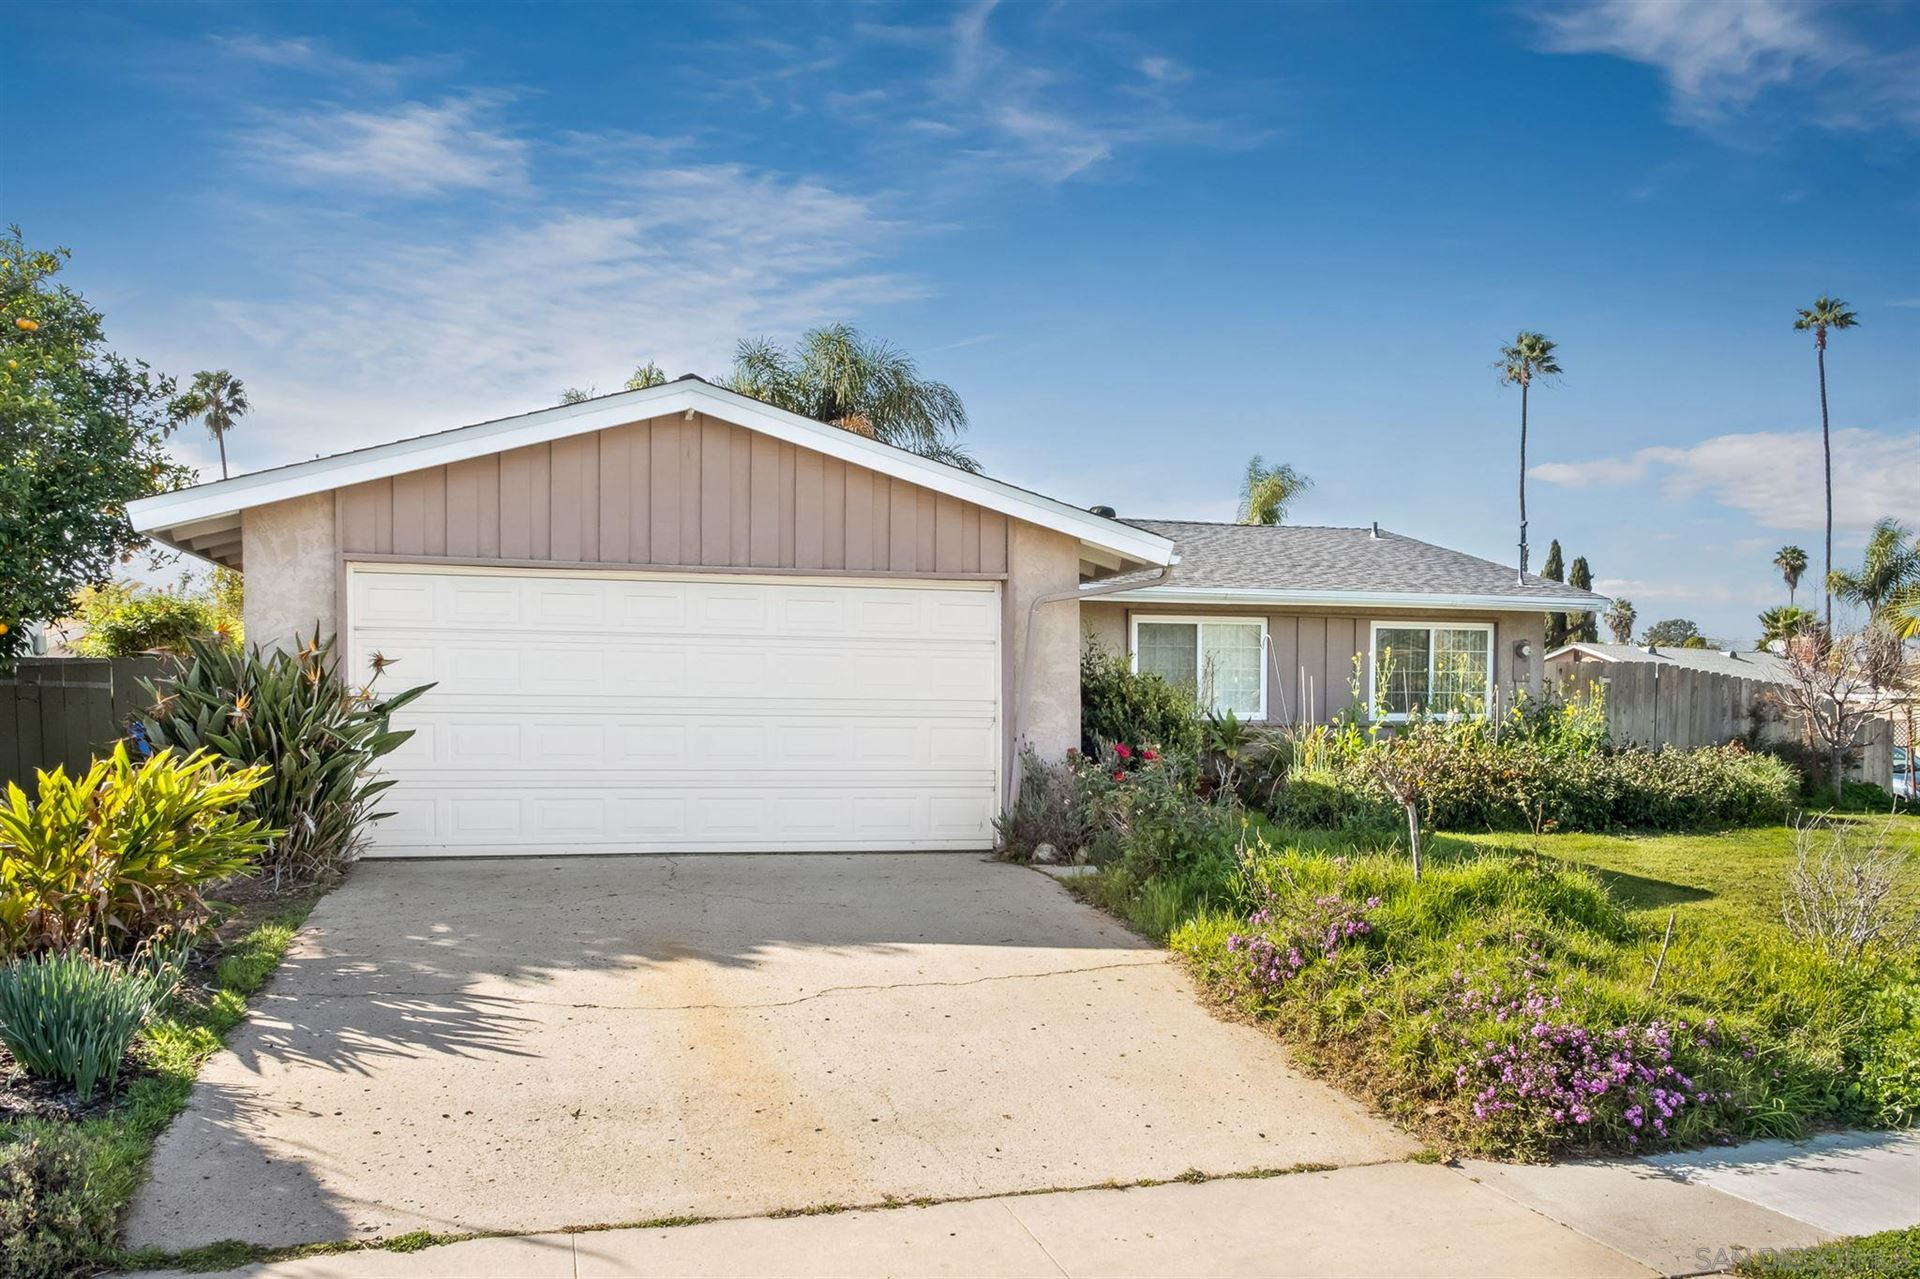 Photo for 4296 Mount Putman Ave, San Diego, CA 92117 (MLS # 210004675)